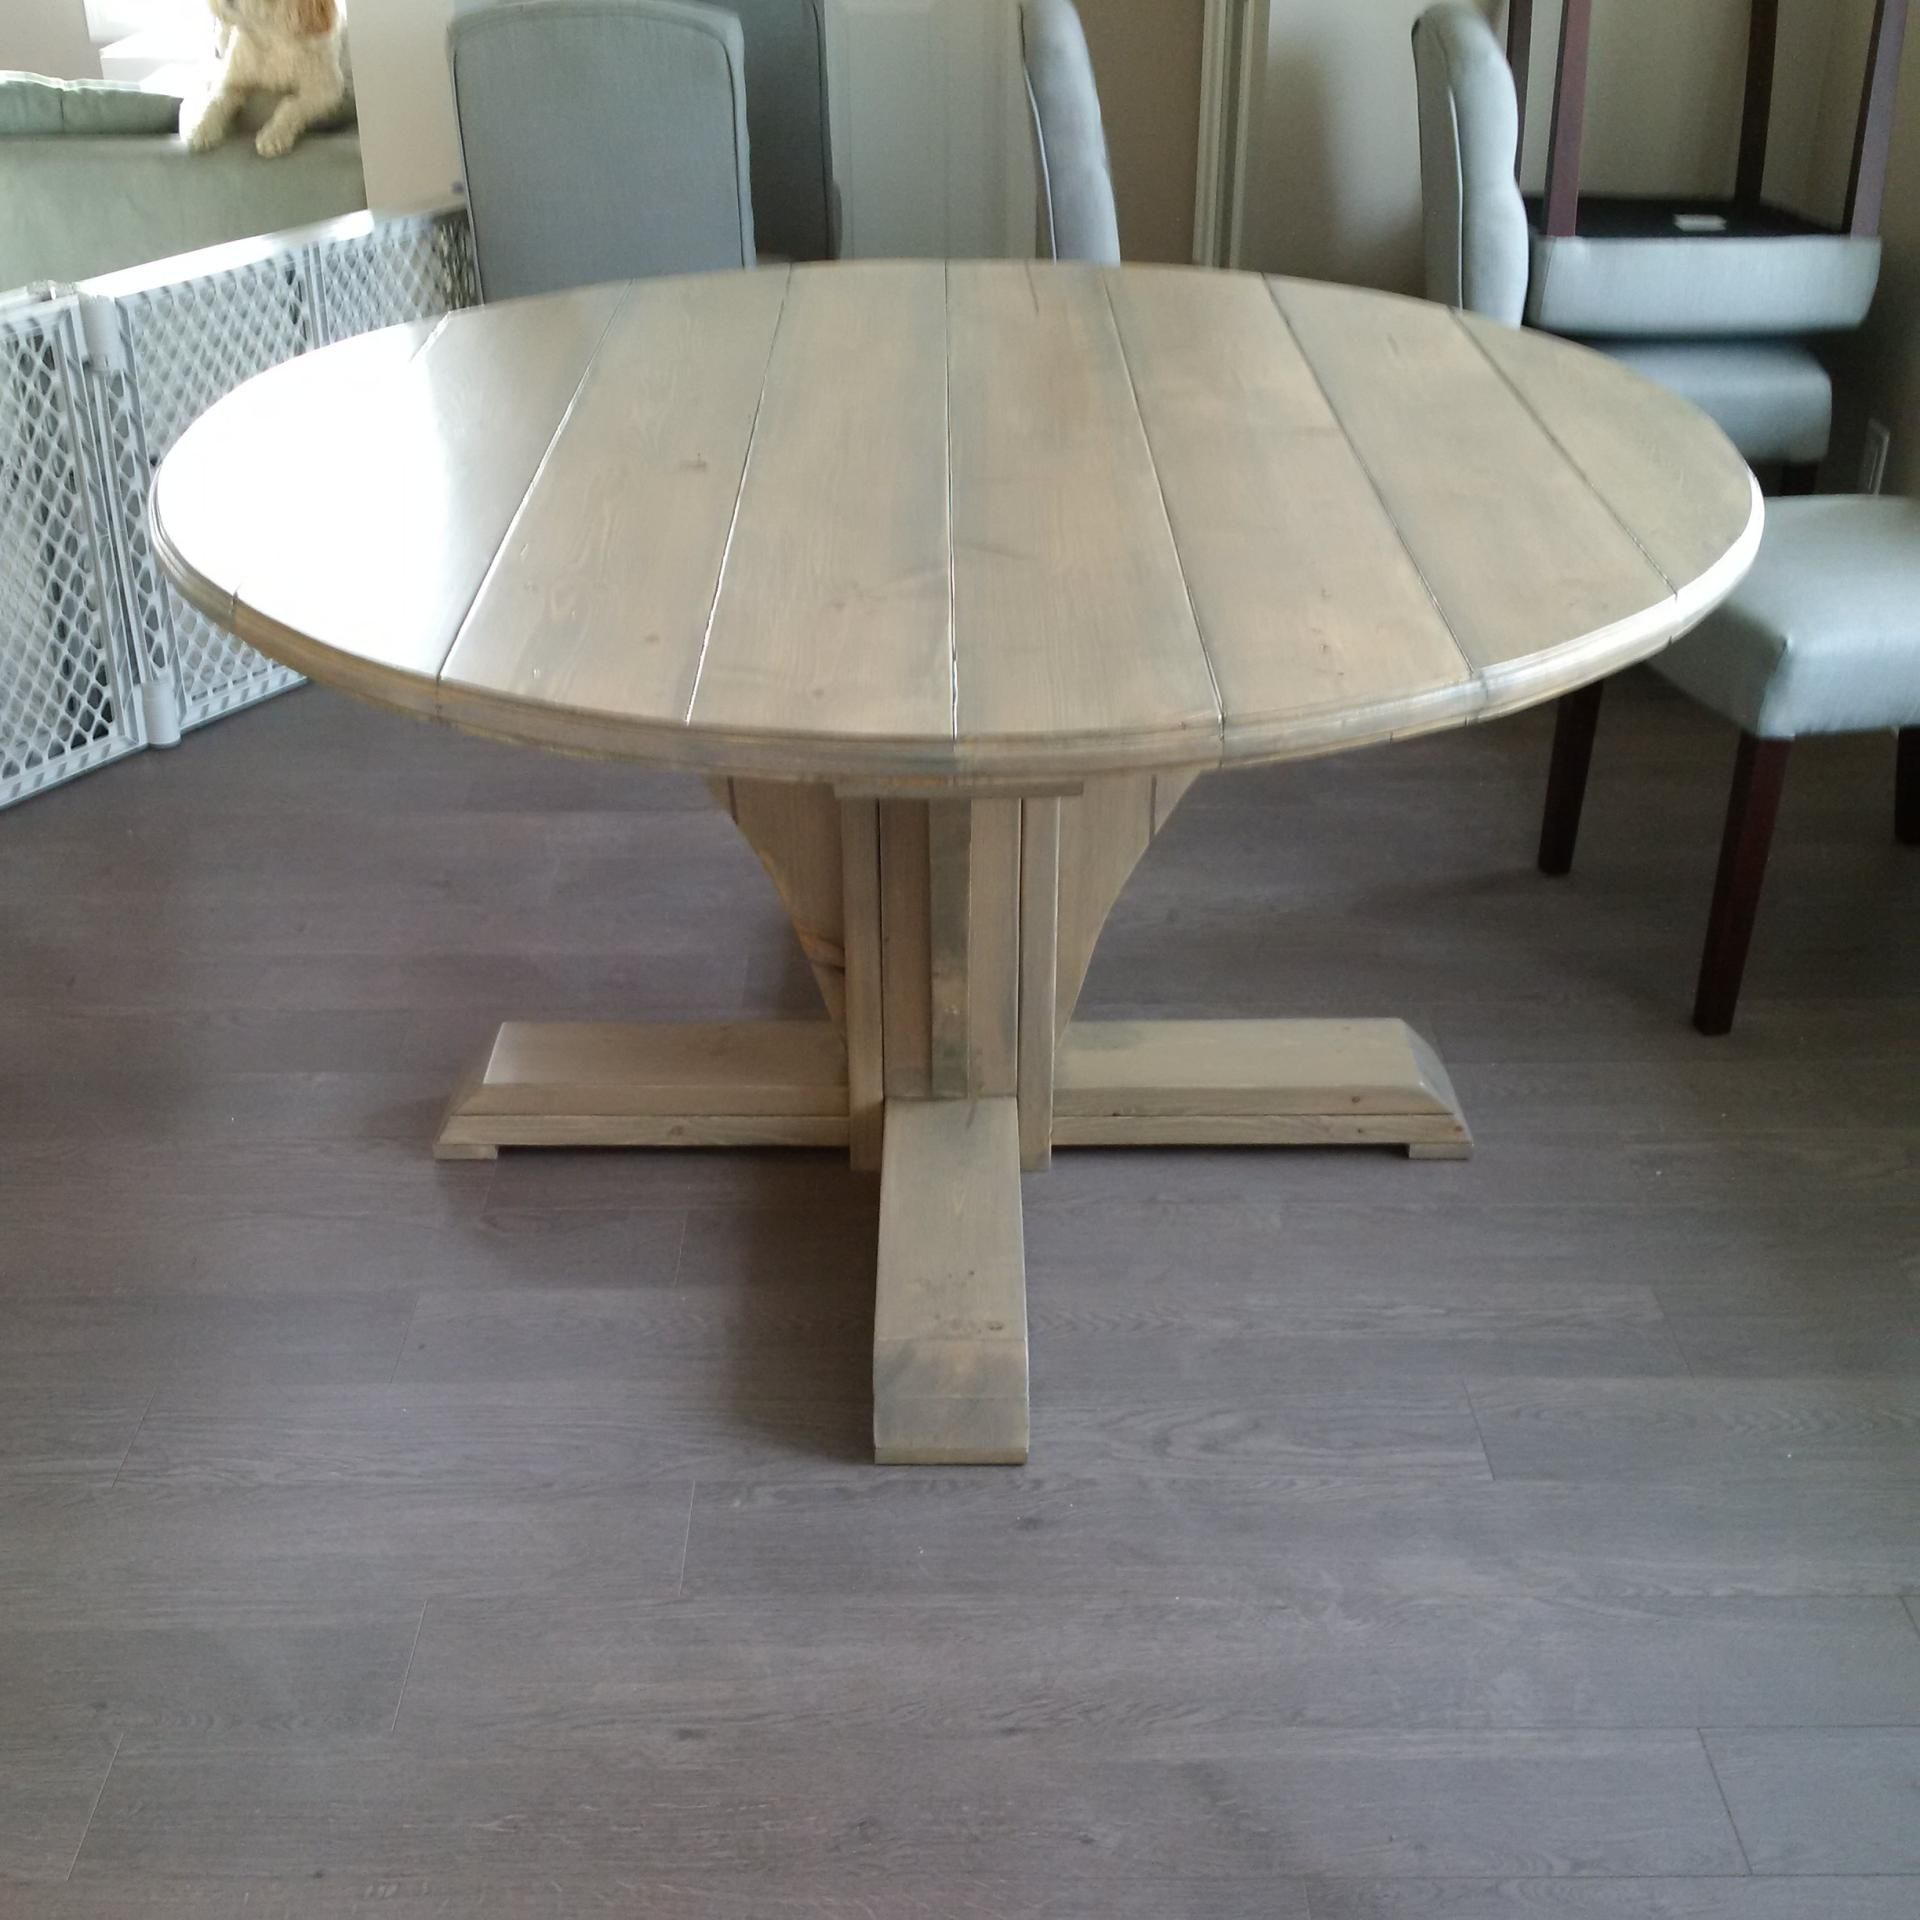 Round Farmhouse Style Table Do It Yourself Home Projects